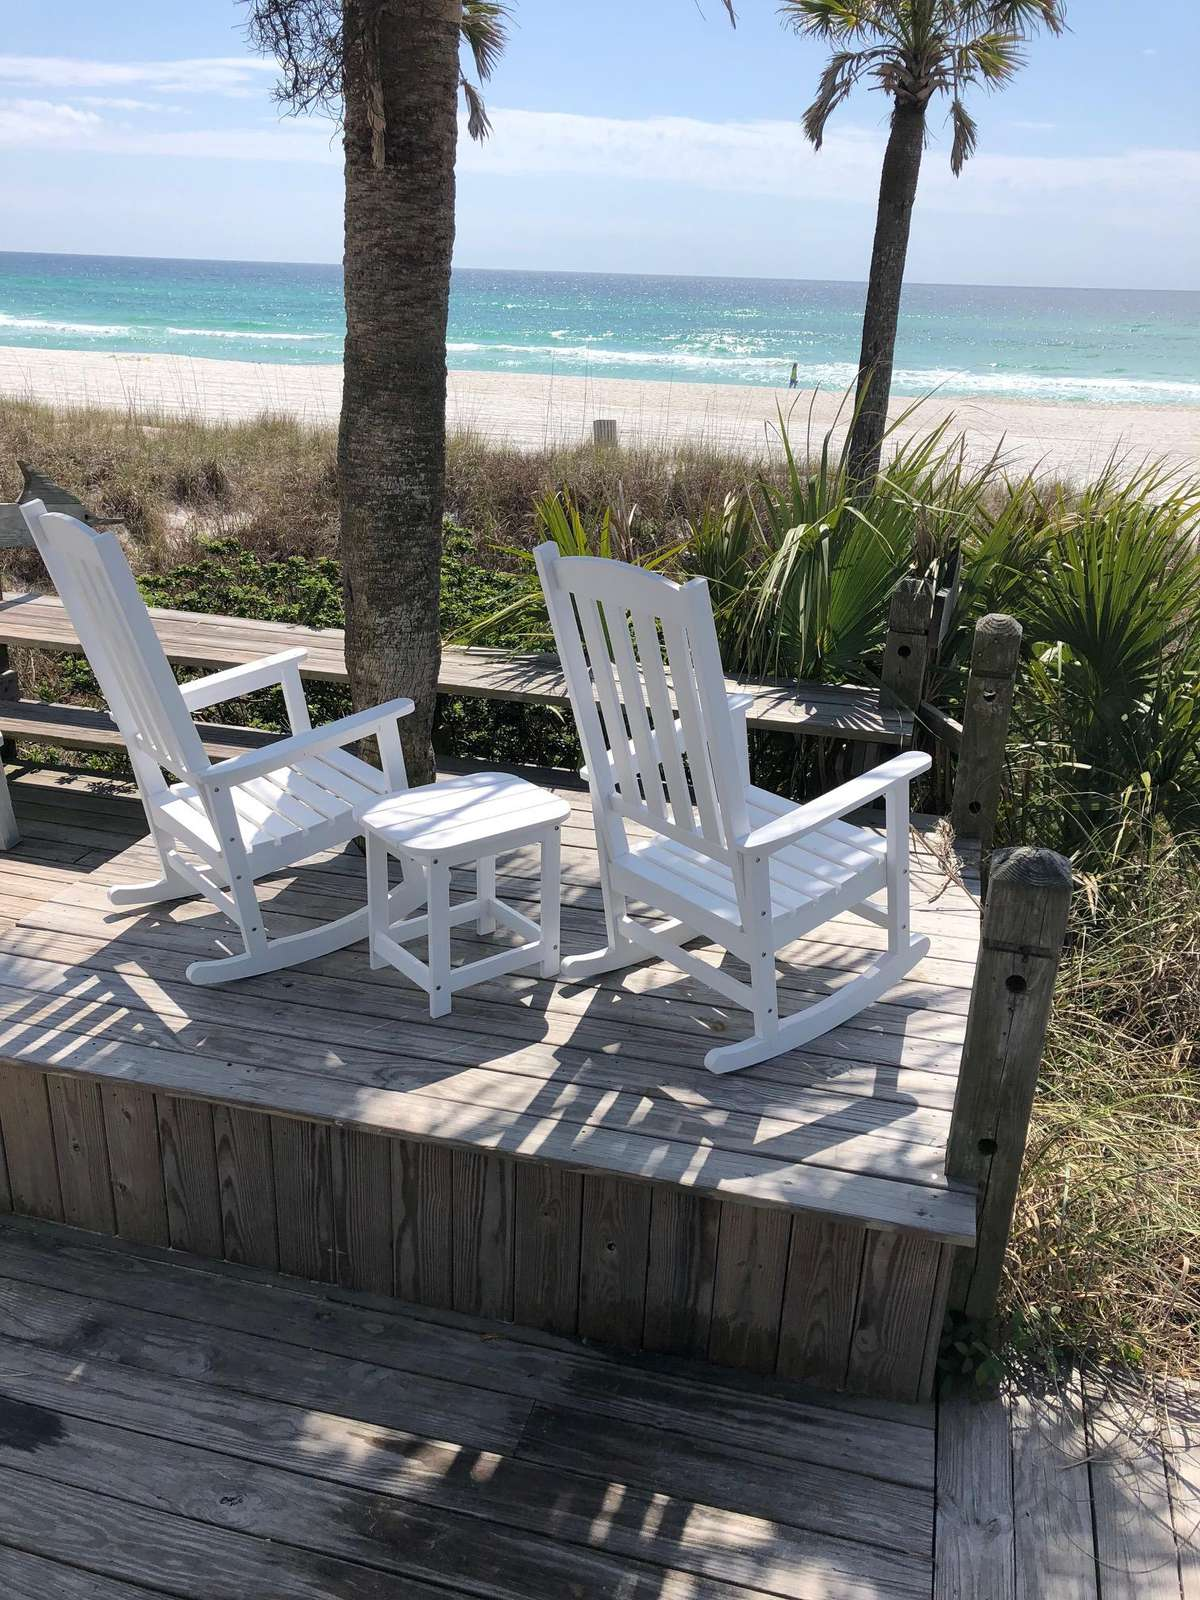 Rocking chairs -watch the sun set over the Gulf